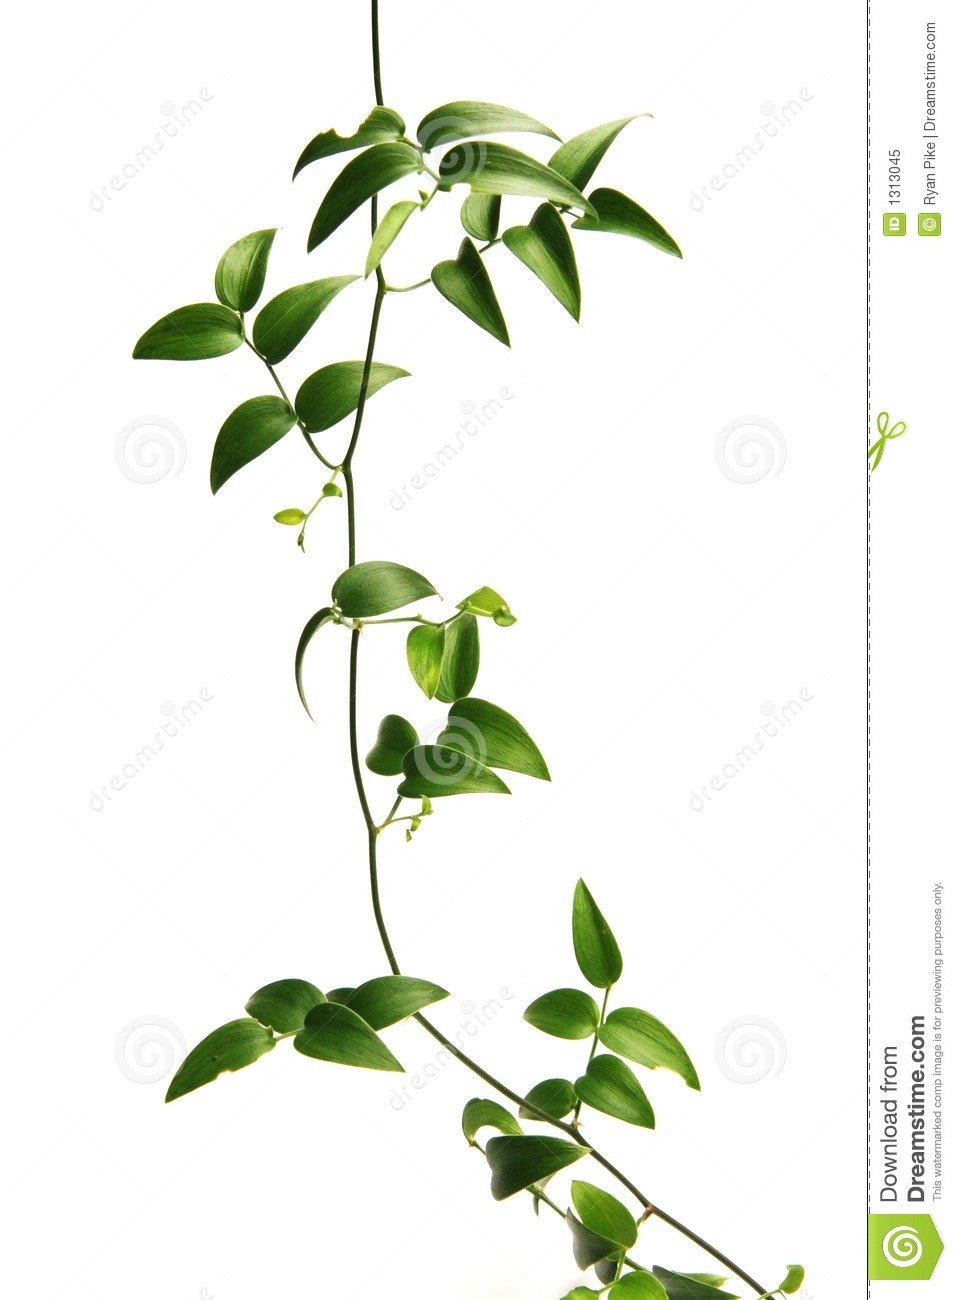 Green vine stock image. Image of foliage, life, pattern ...